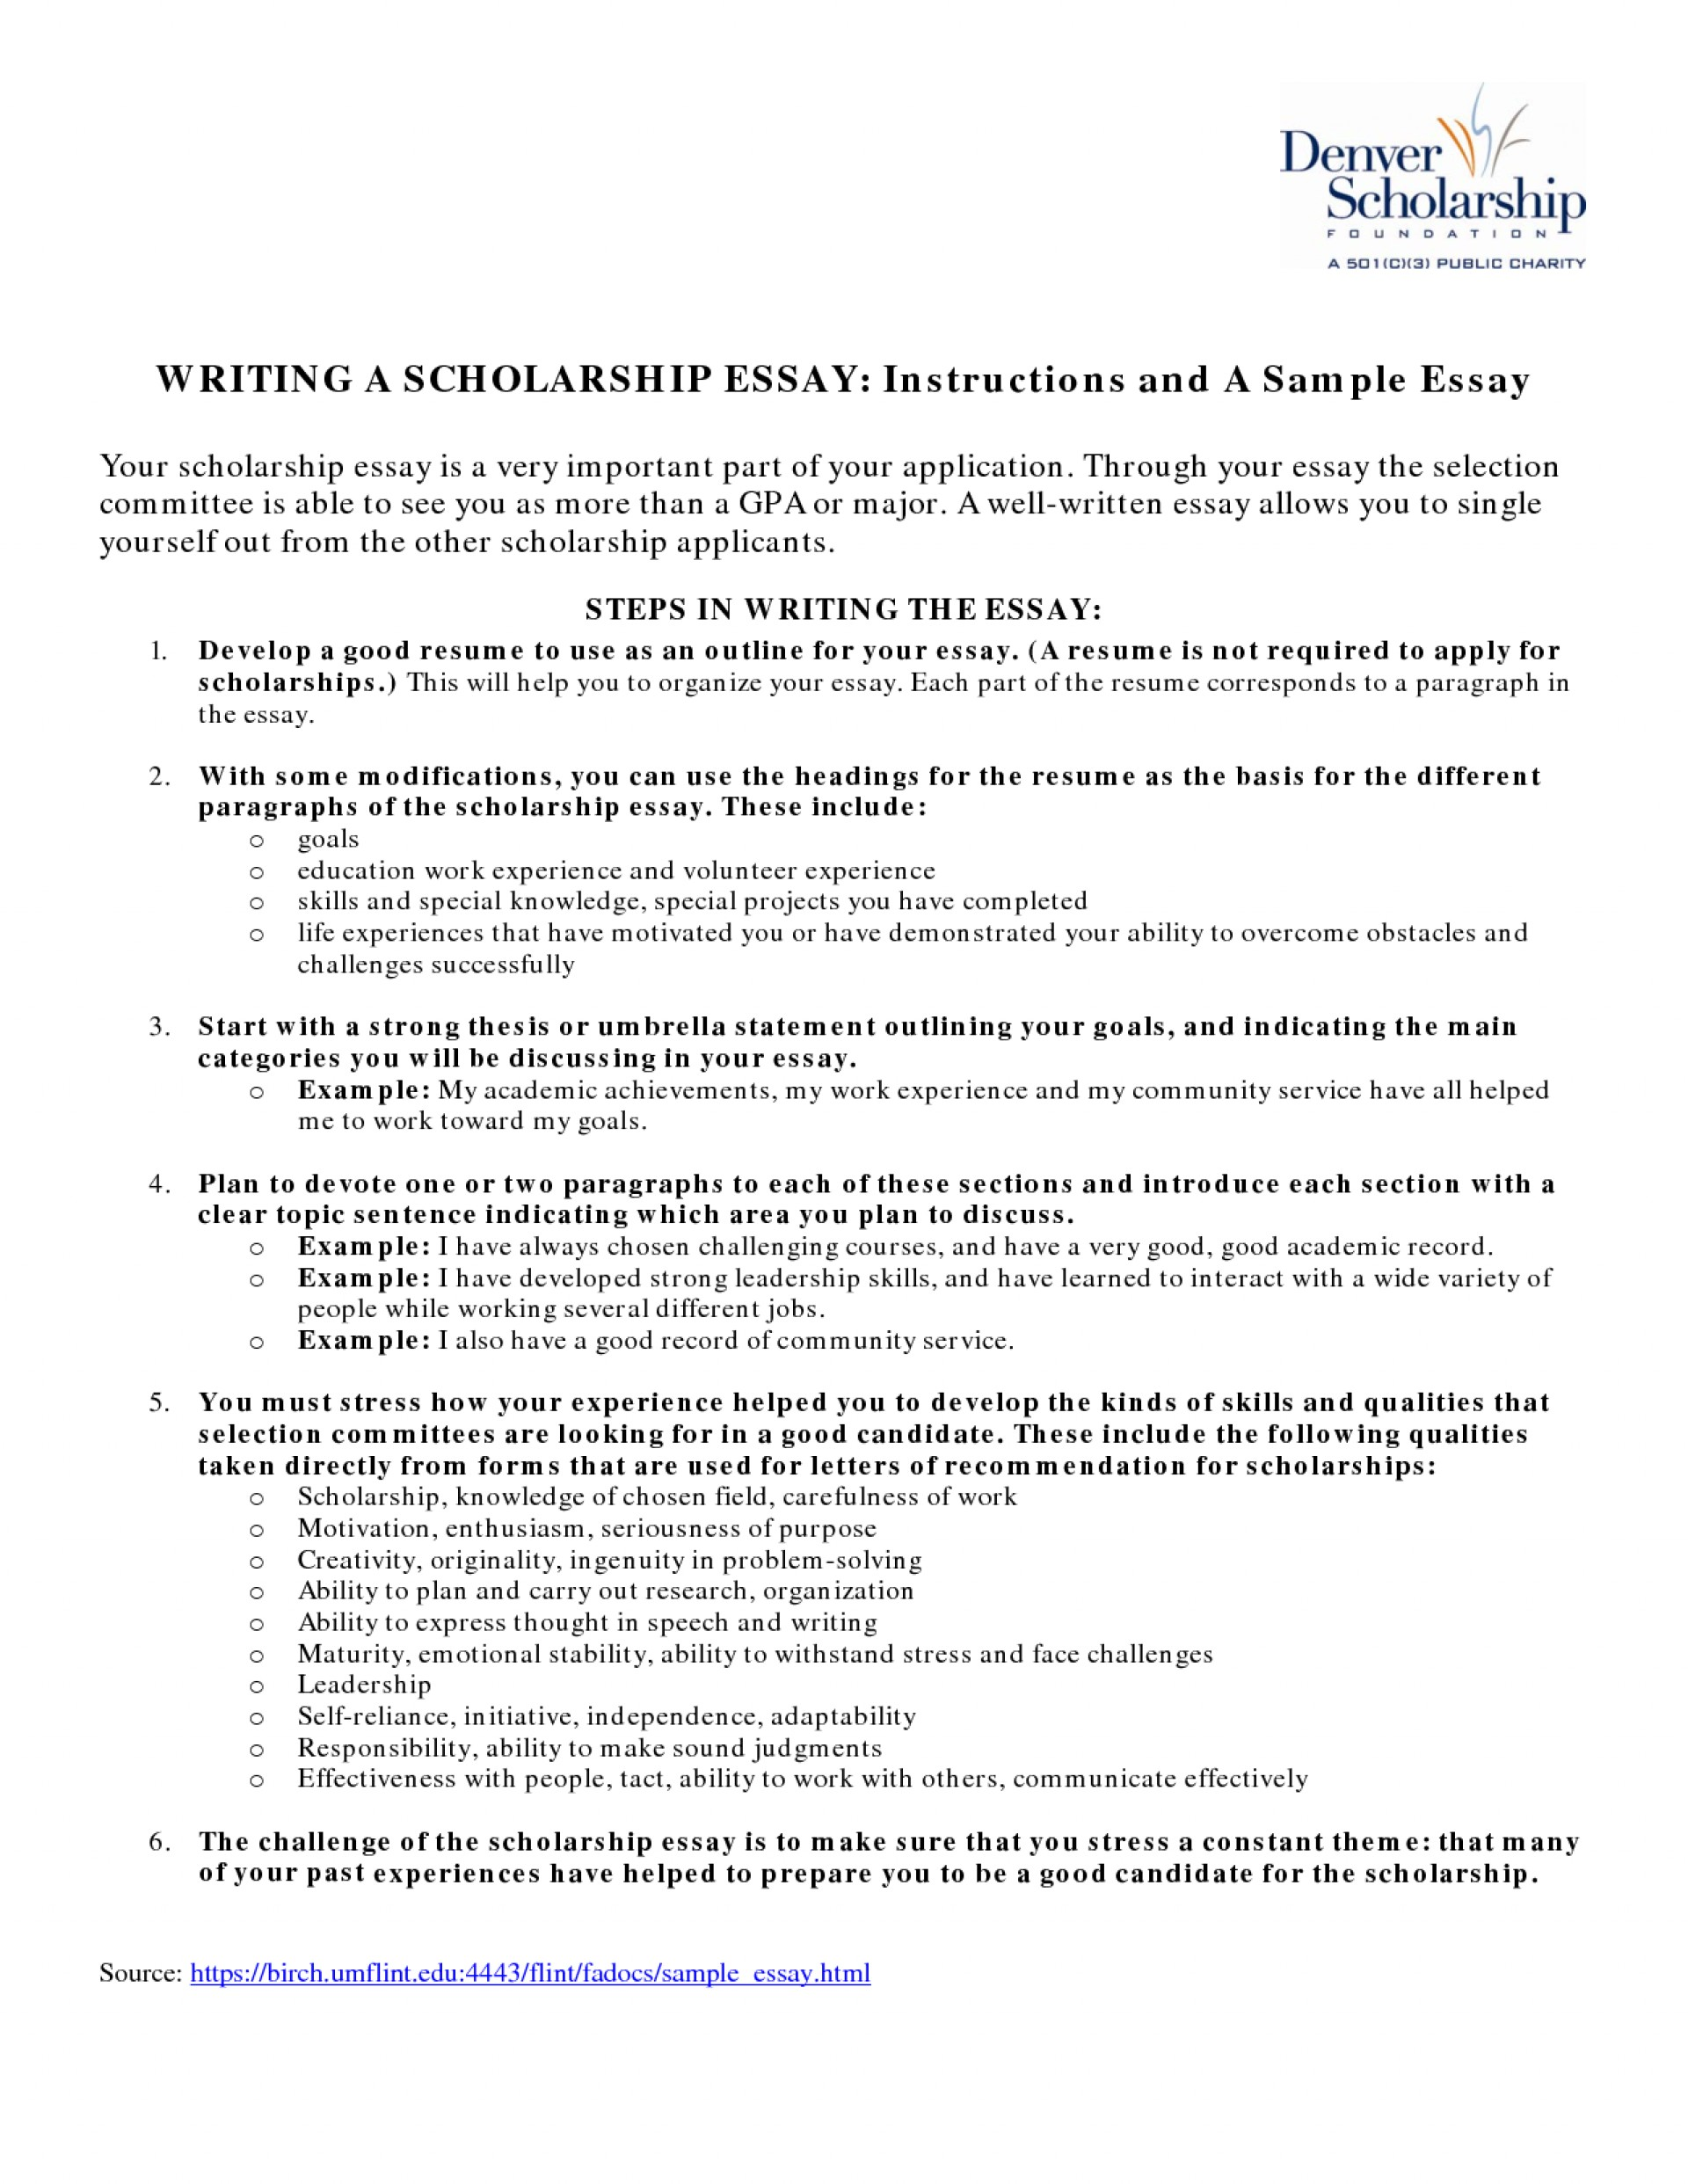 023 Essay Example What To Write For Scholarship About Yourself On Tips Writing Effective Essays Awesome A How That Stands Out In Good 1920